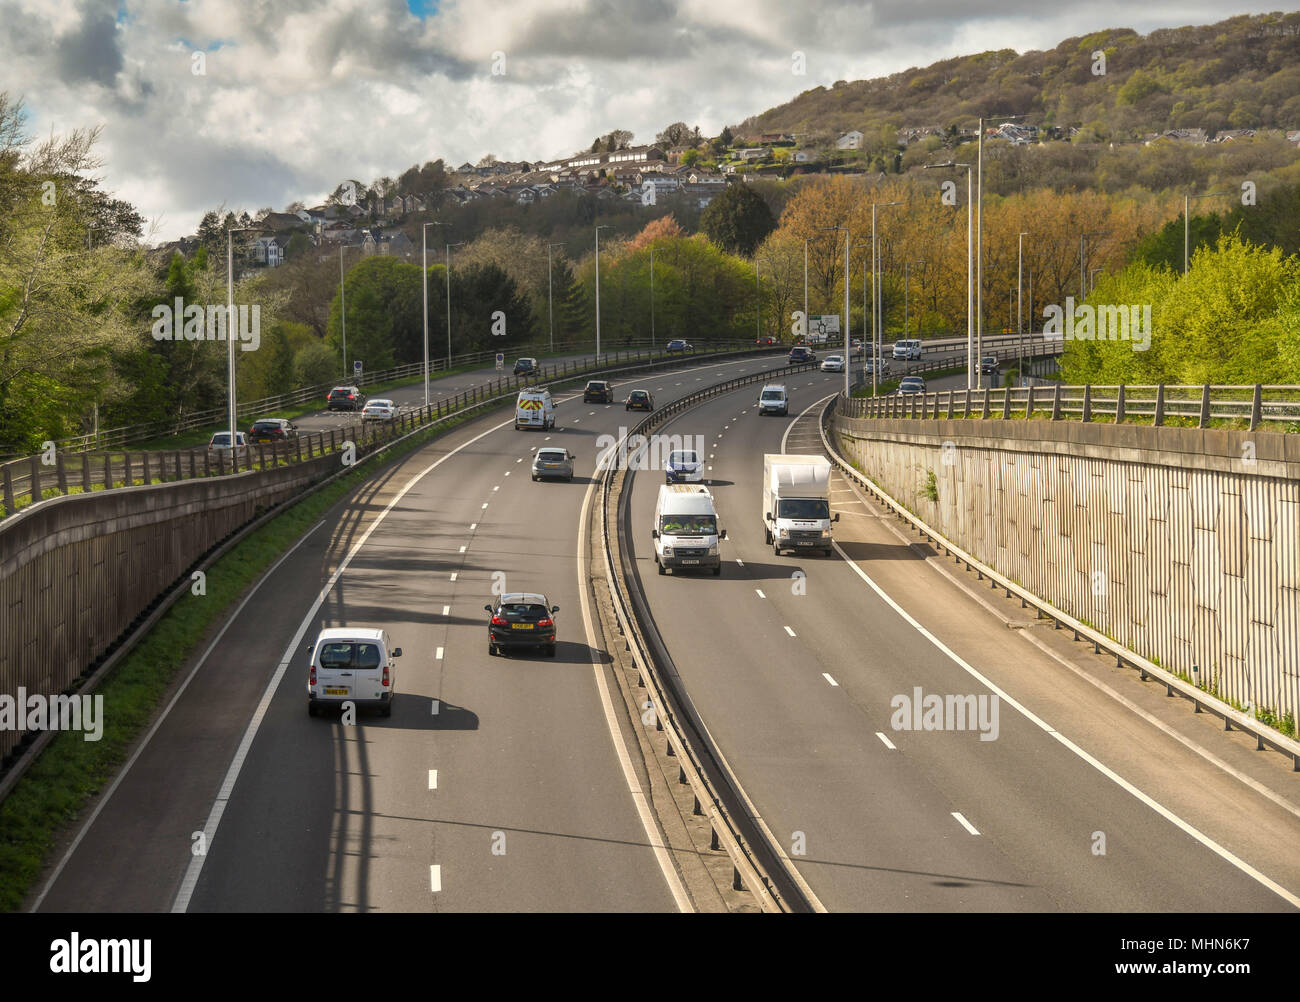 Traffic on the A470 trunk road at Pontypridd - Stock Image